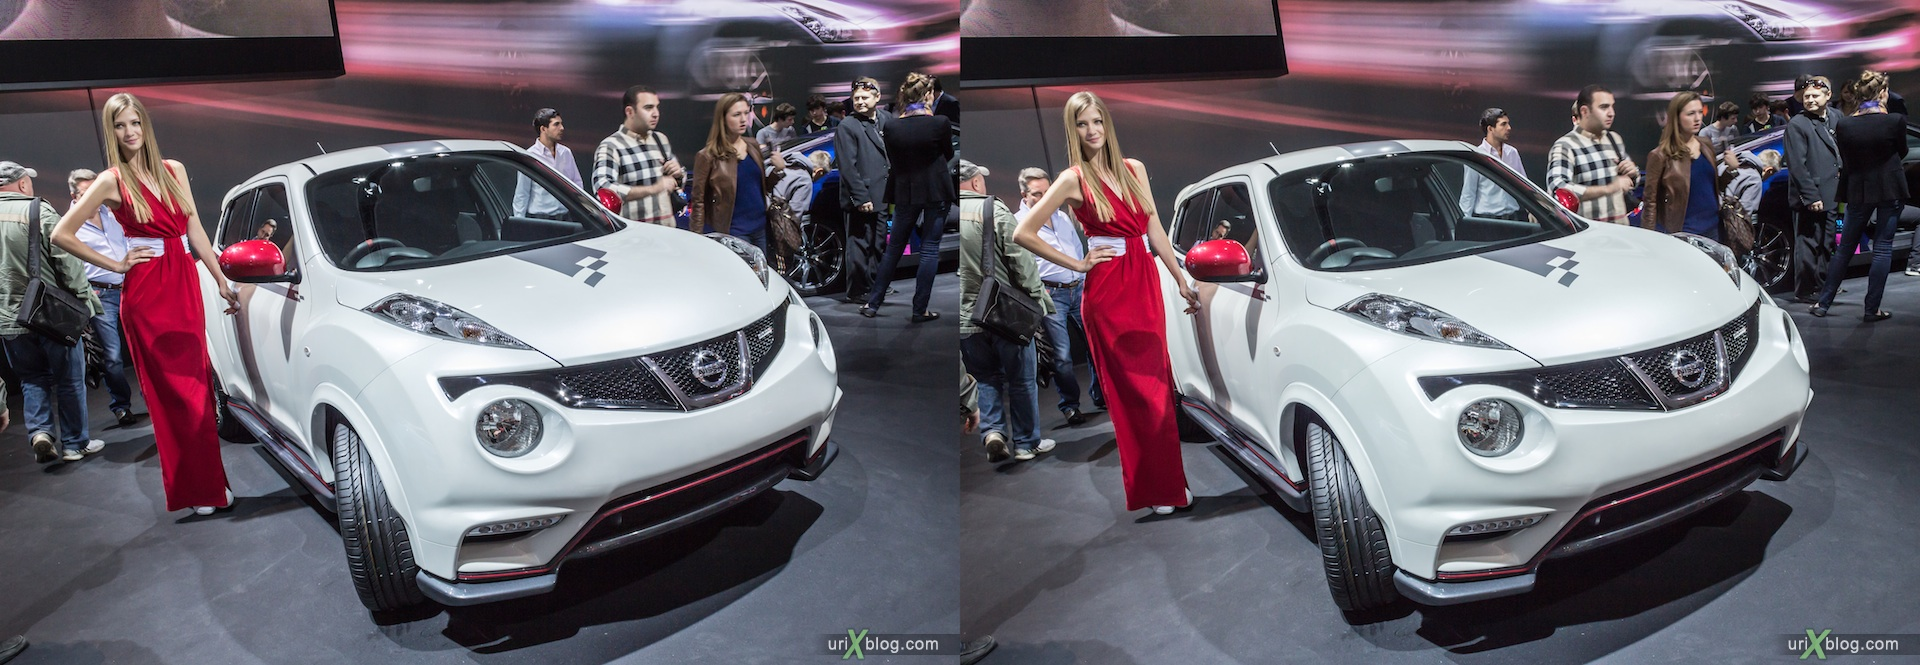 2012, Nissan, girl, model, Moscow International Automobile Salon, auto show, 3D, stereo pair, cross-eyed, crossview